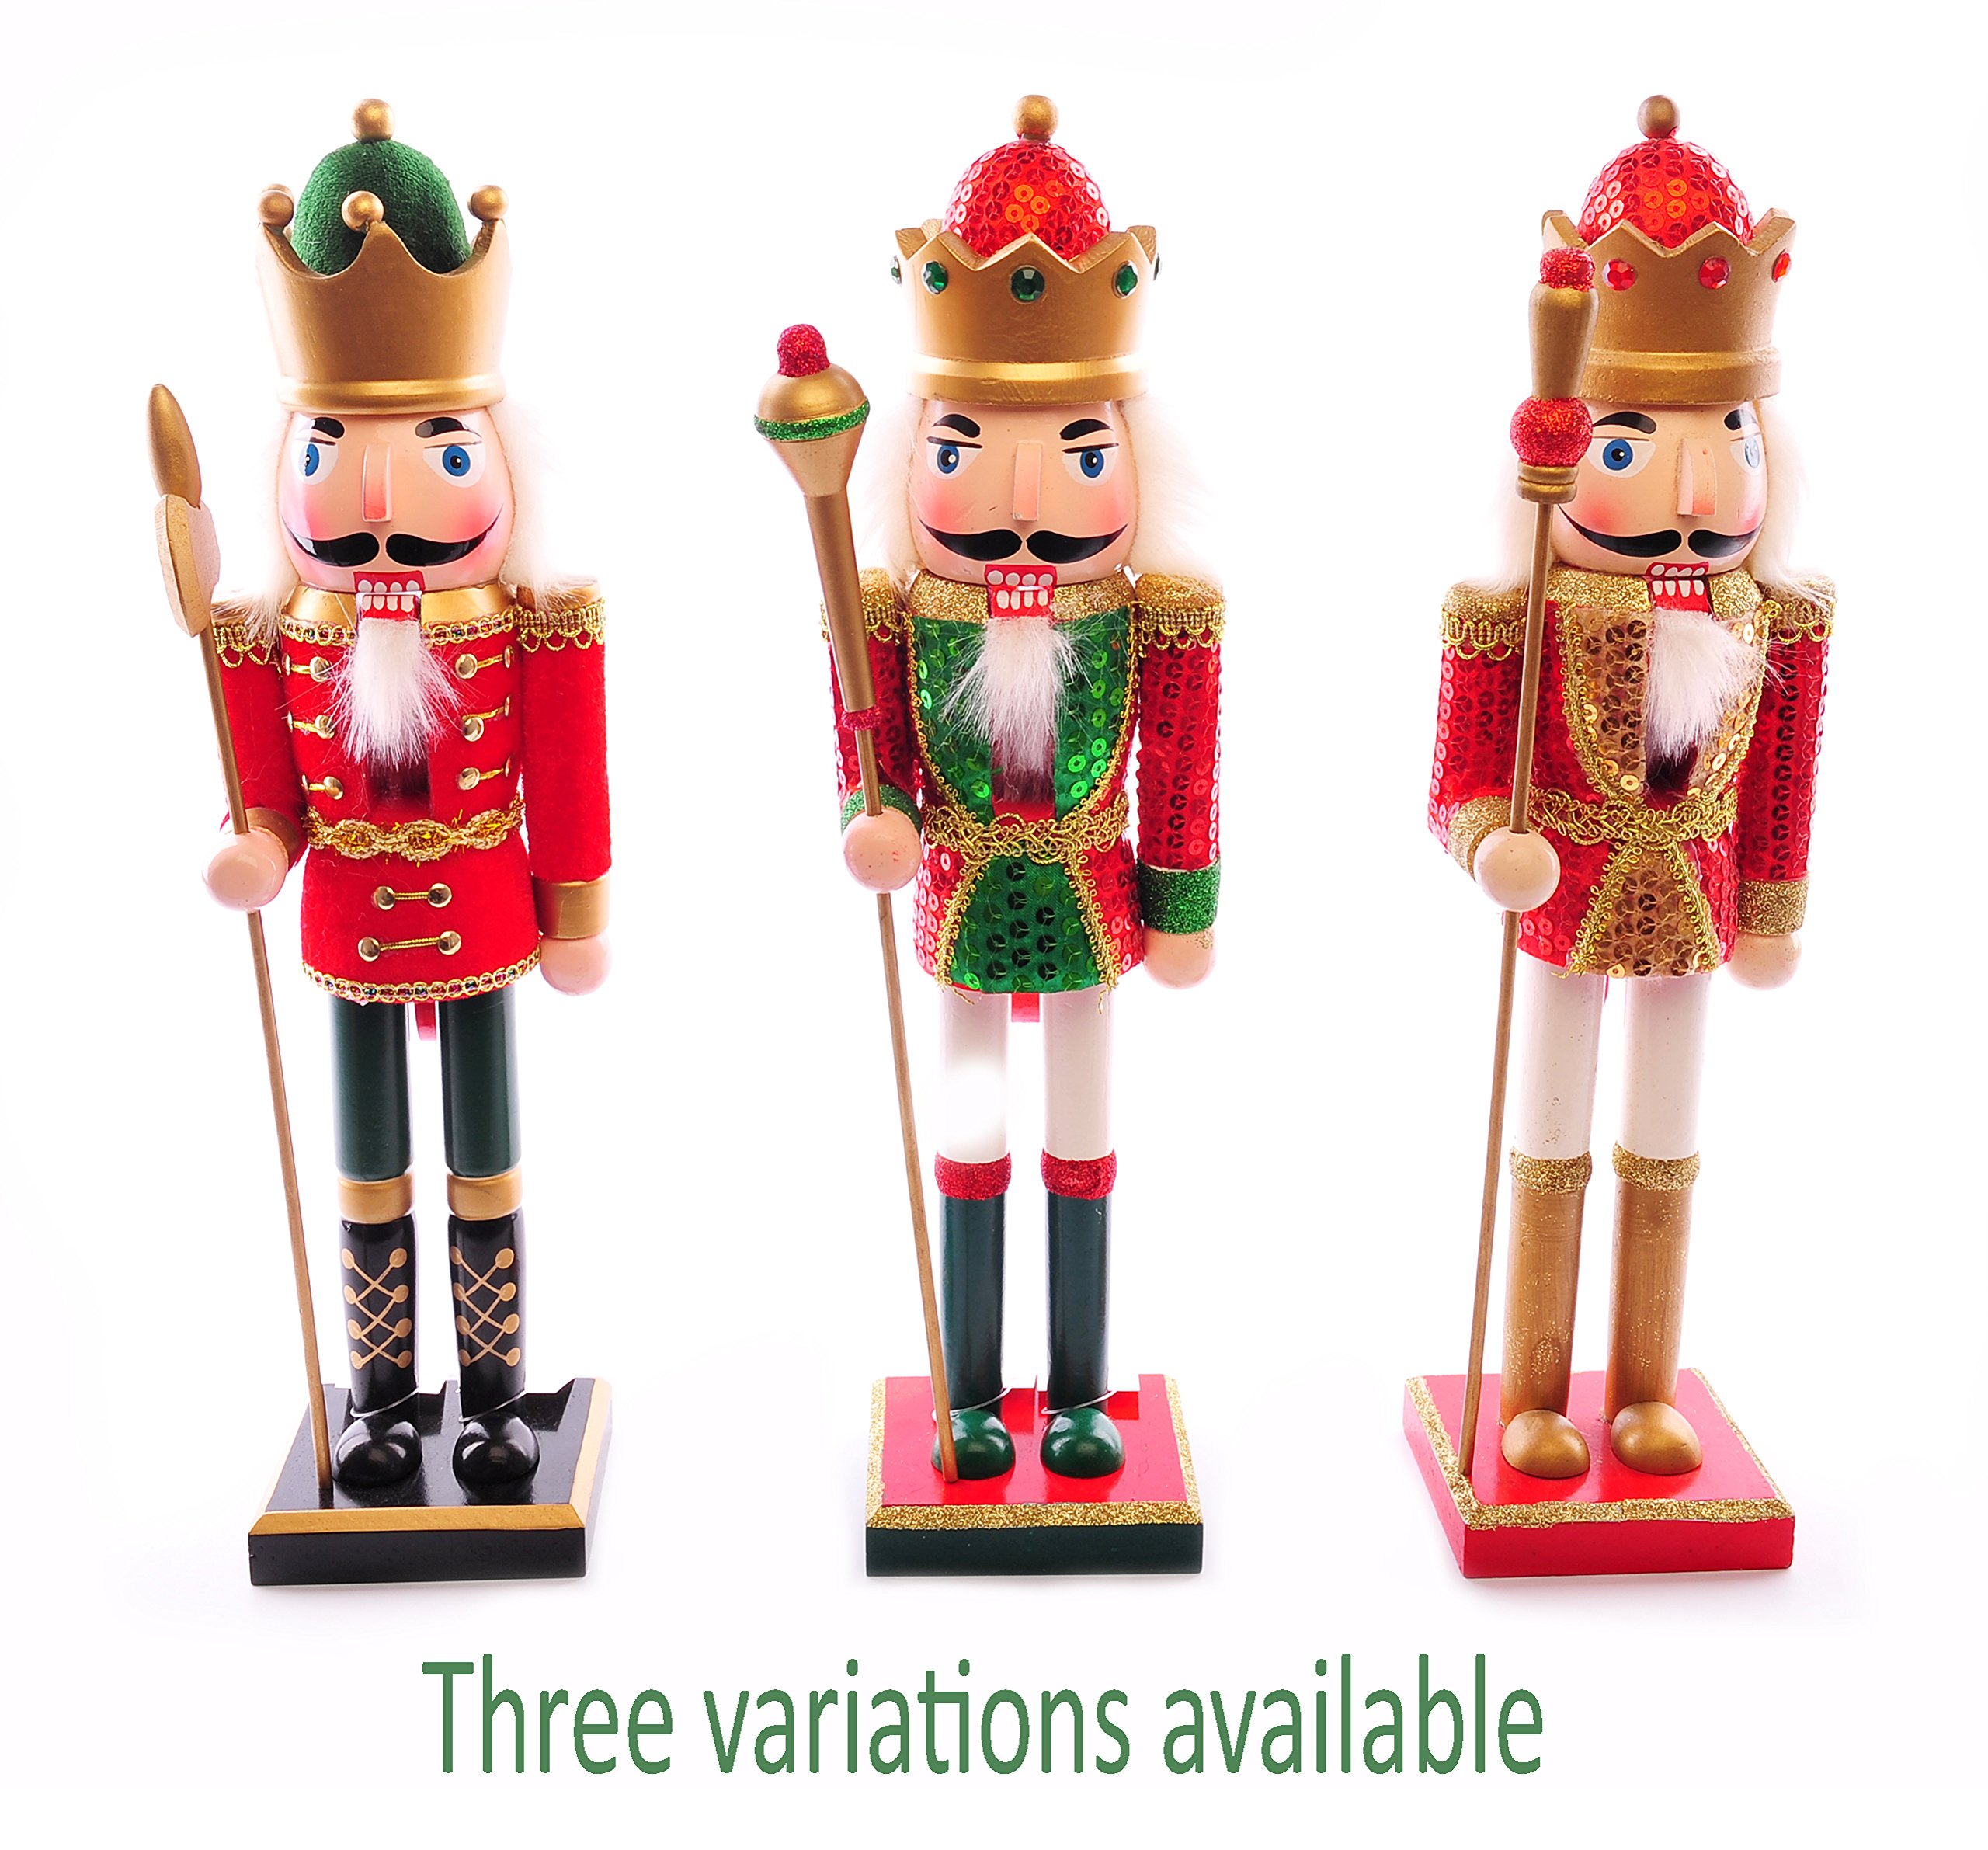 Christmas Nutcracker.Traditional Wooden Christmas Nutcracker Soldier Decoration Red Green Gold Christmas Sequin Detail 25cm